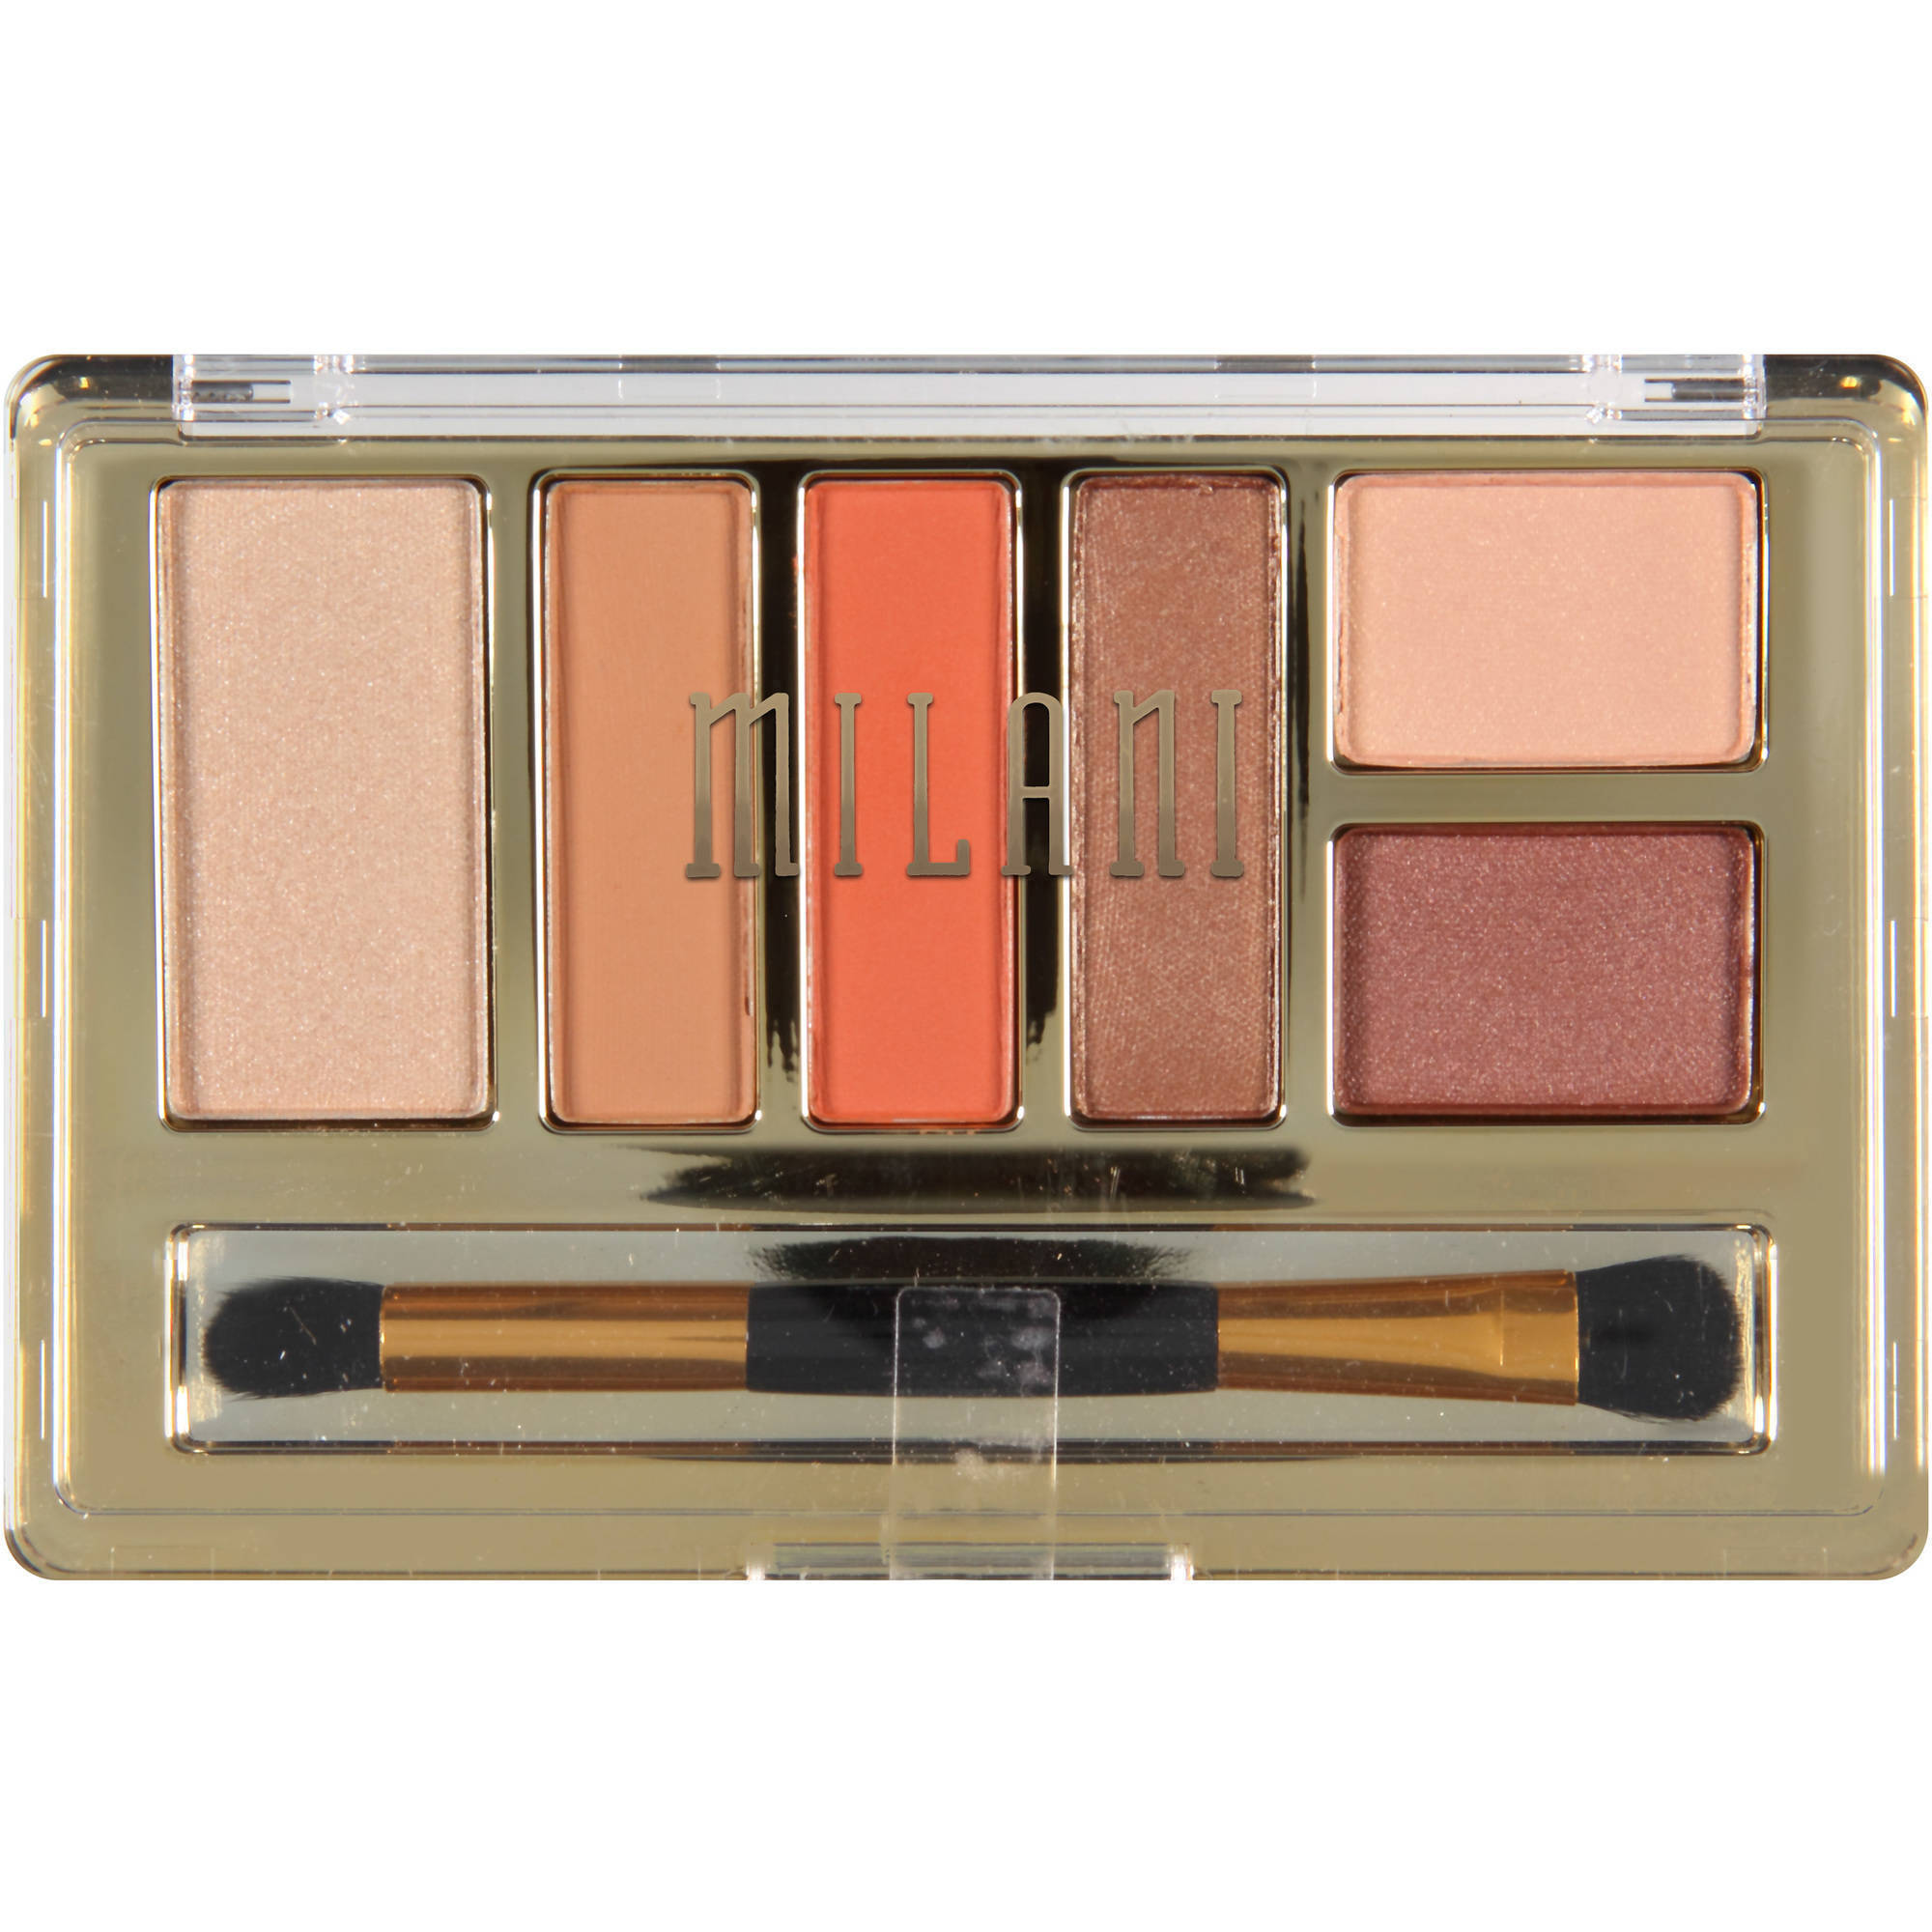 Milani Everyday Eyes Eyeshadow Collection, 05 Earthy Elements, 0.21 oz